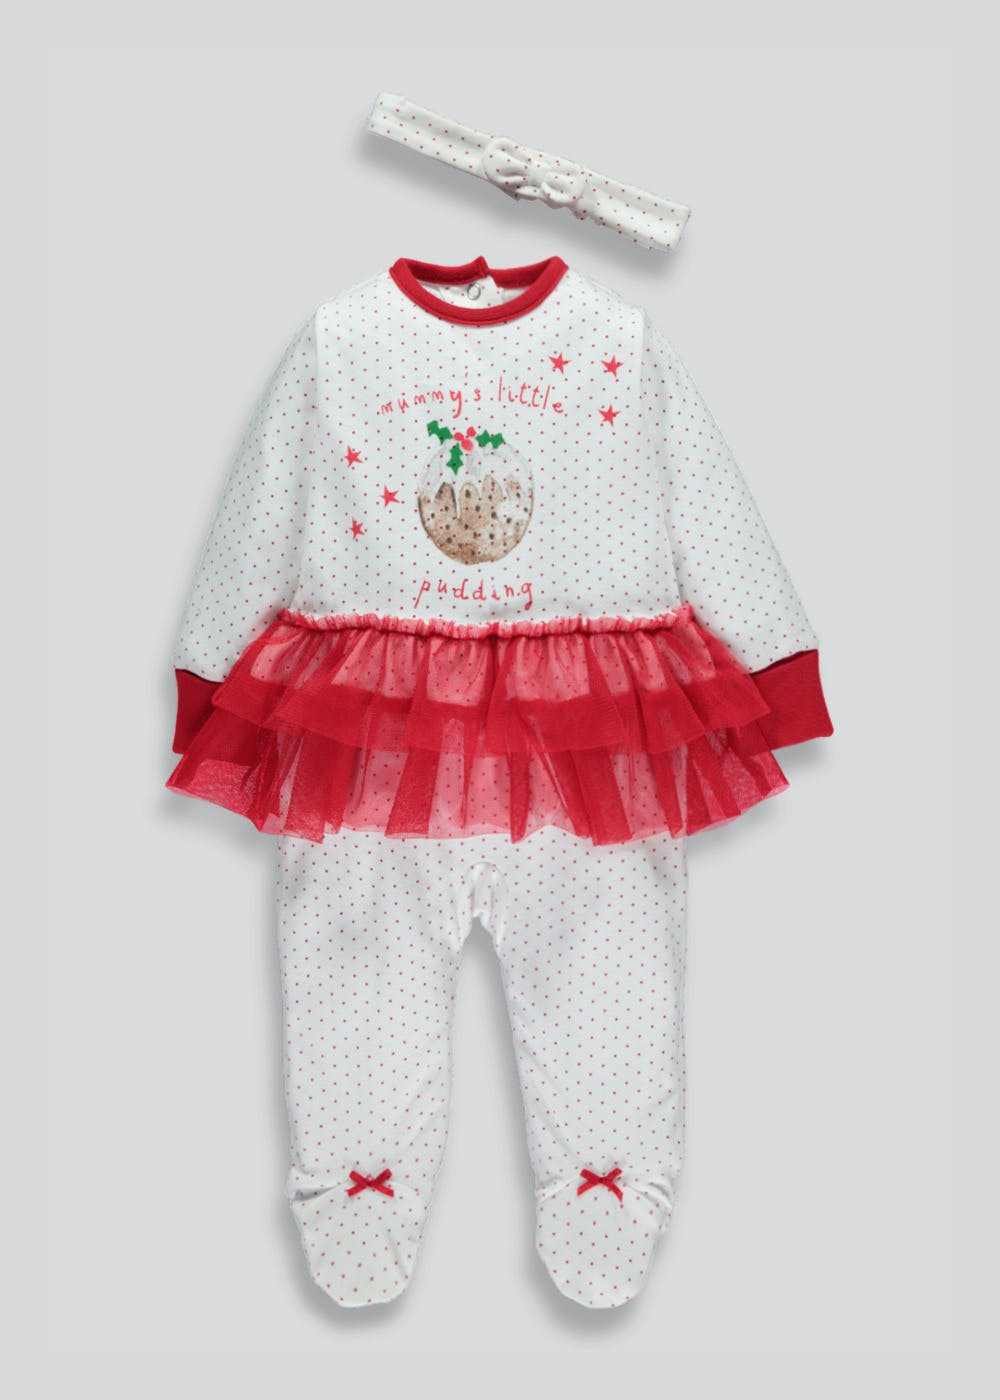 Matalan Baby Clothes Uk